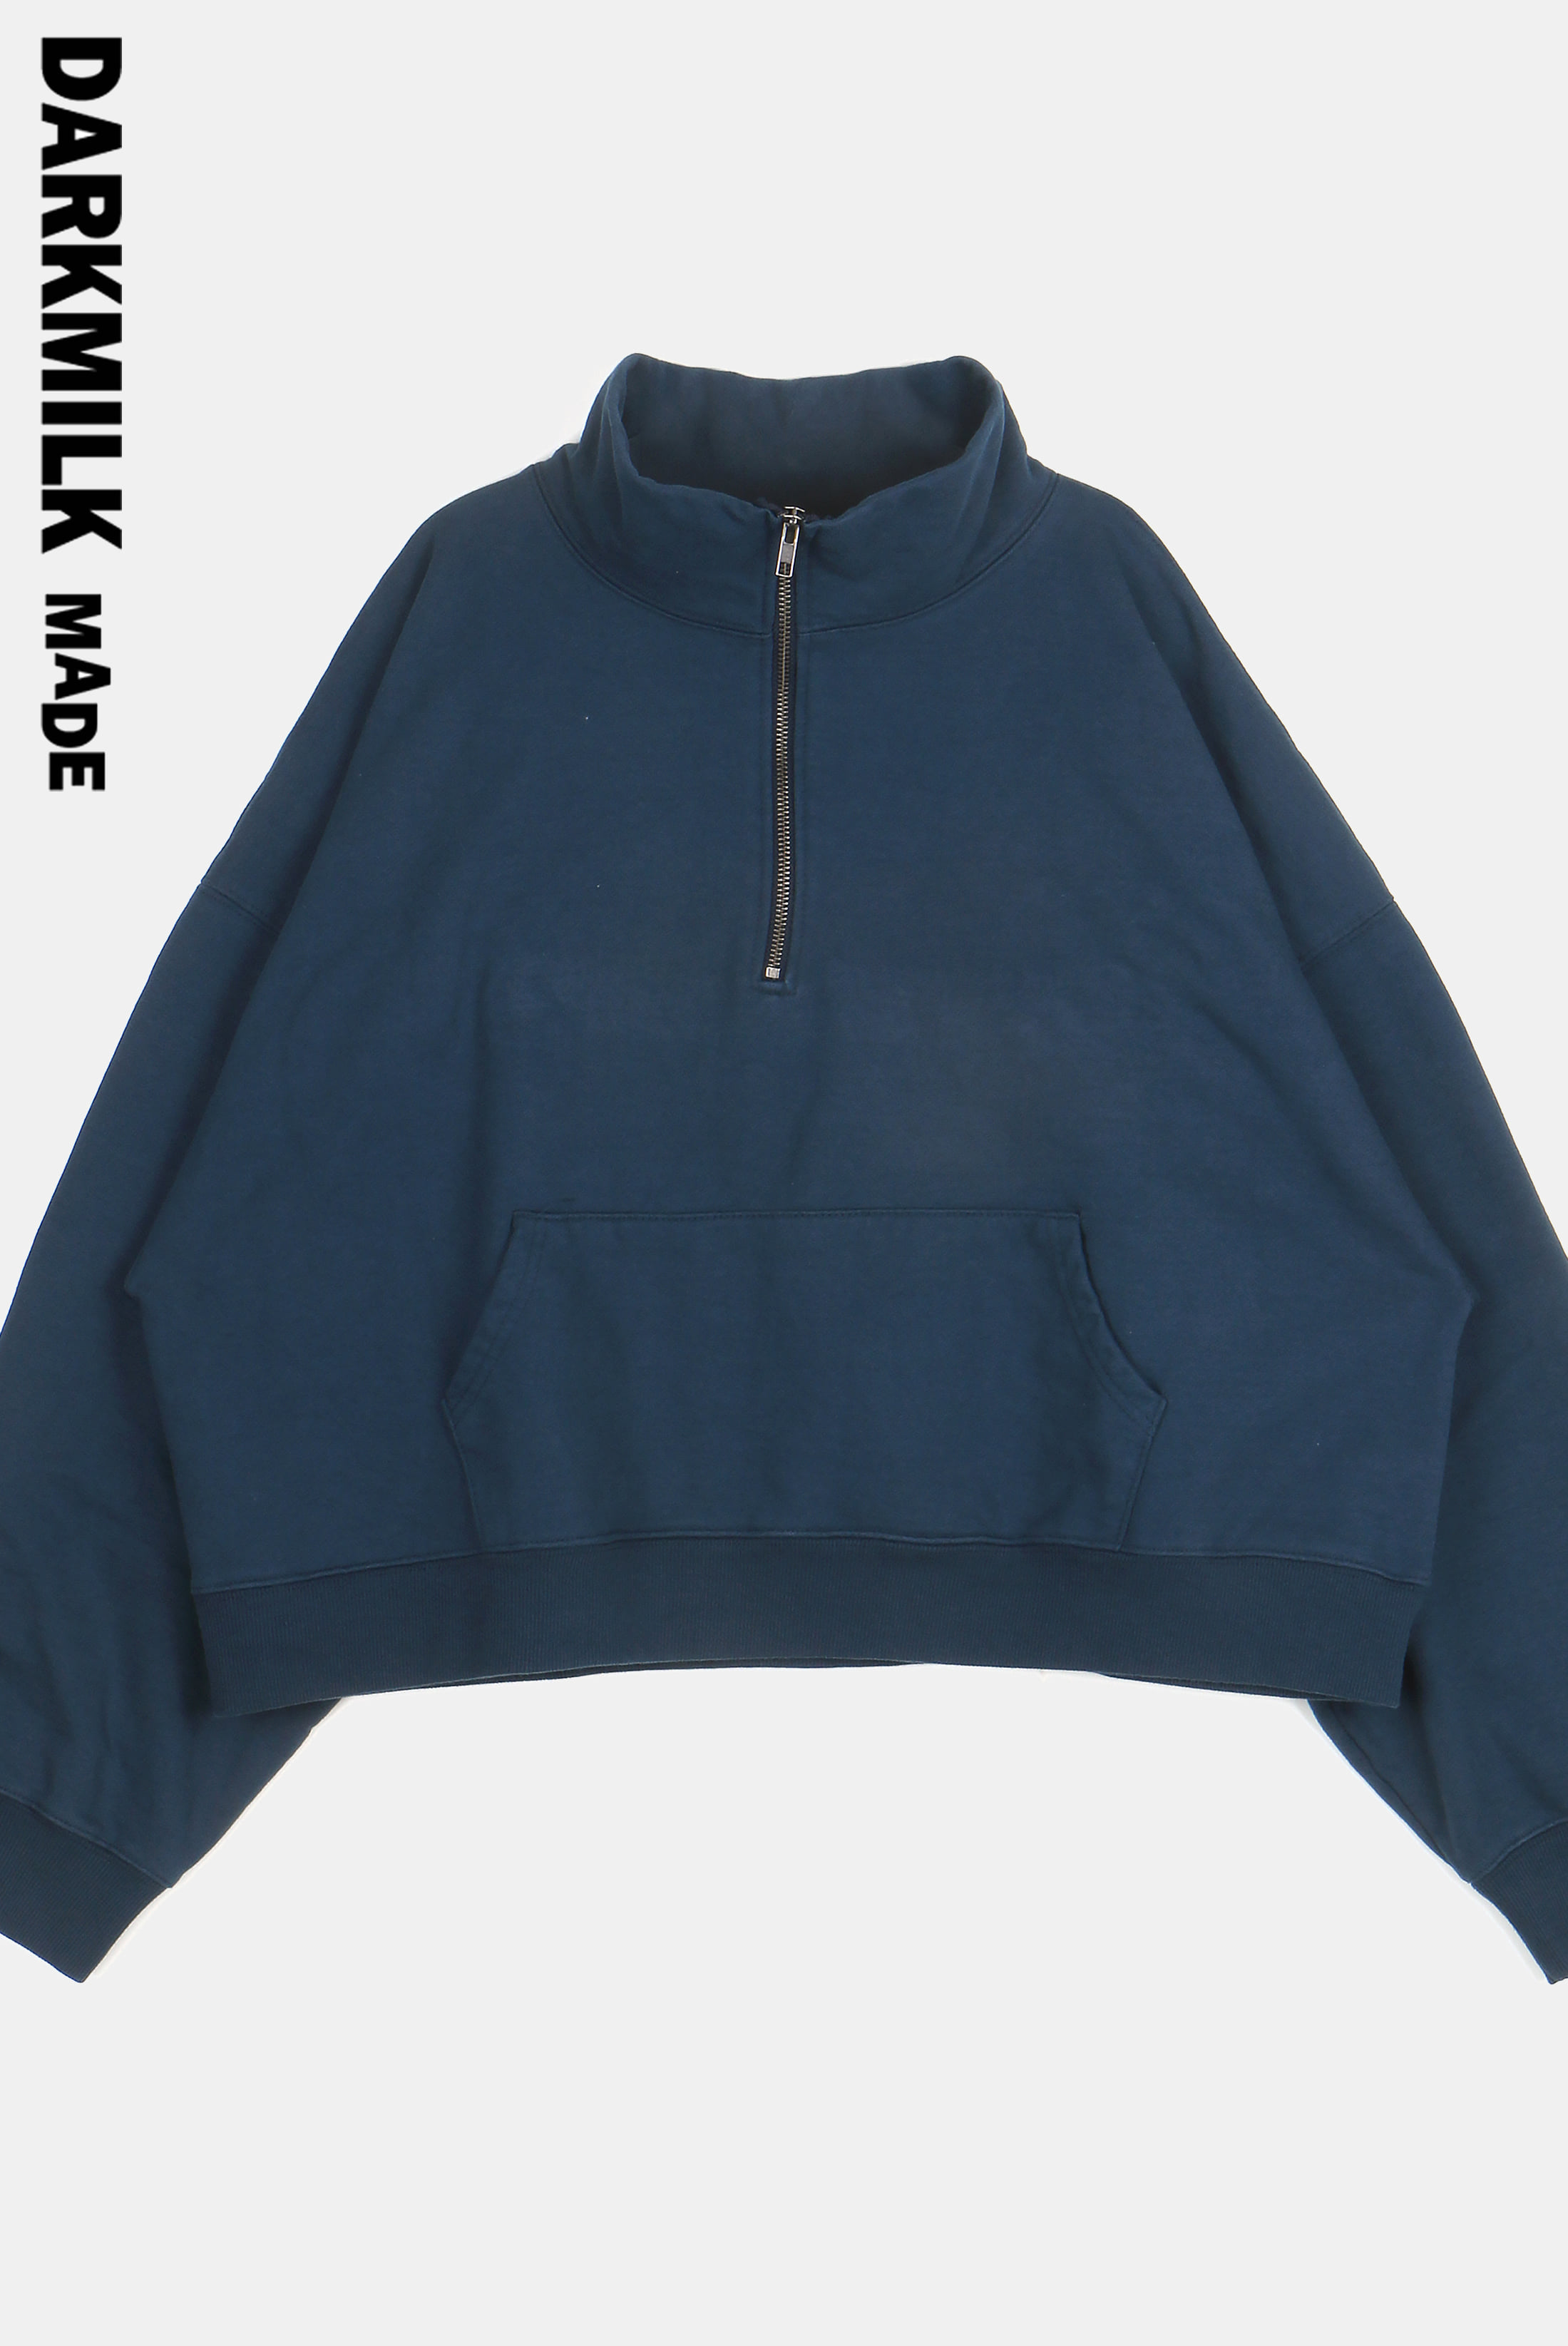 [promotion_MADE] Season_Color Crop Heavy_Anorack